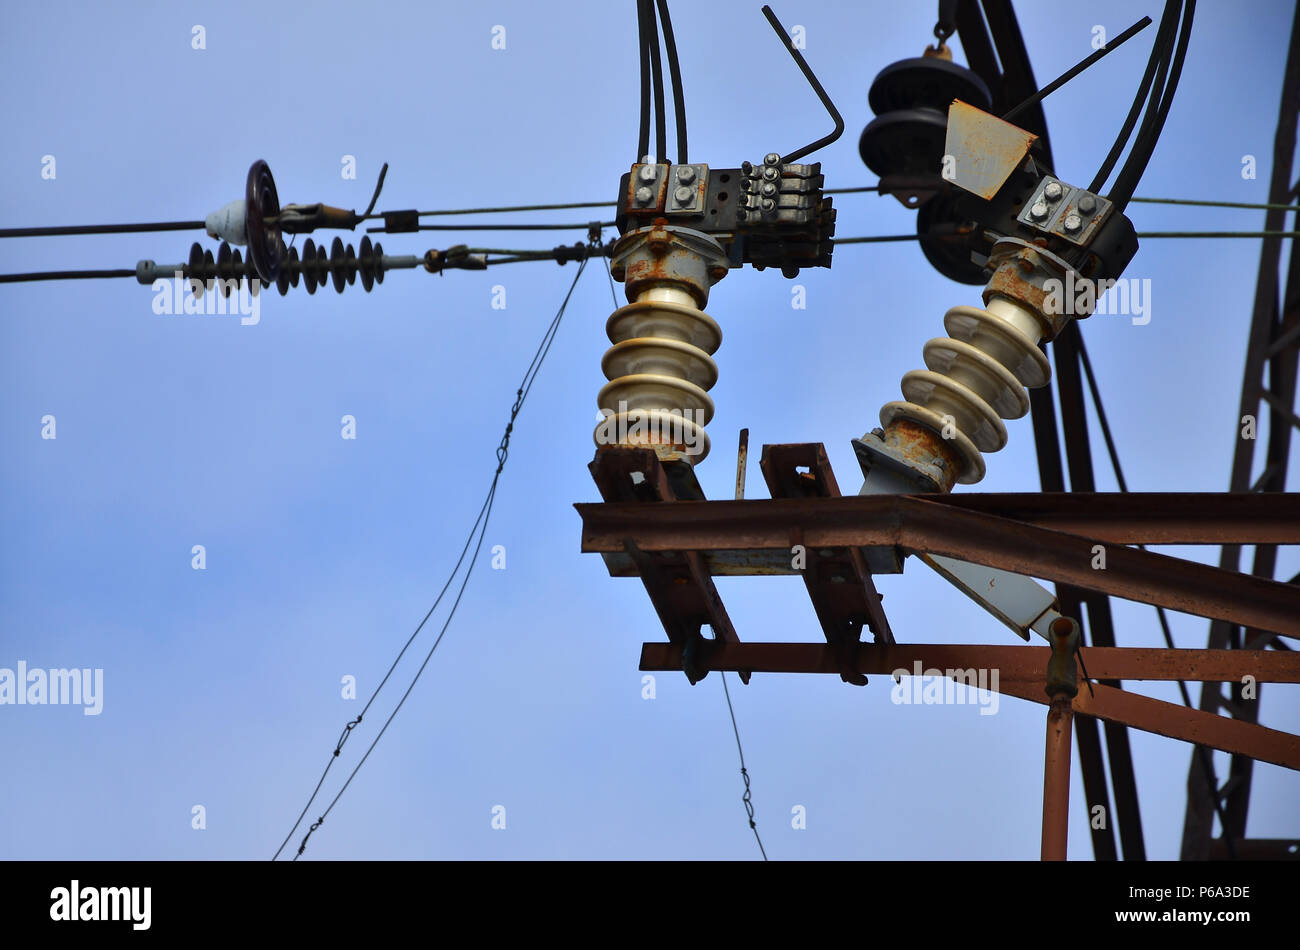 Electricity Transfer Network Stock Photos Electricityhouse Electrical Wiring Smart House Some Details From A High Voltage Post Accompanying The Transmission Of Through Wires Along